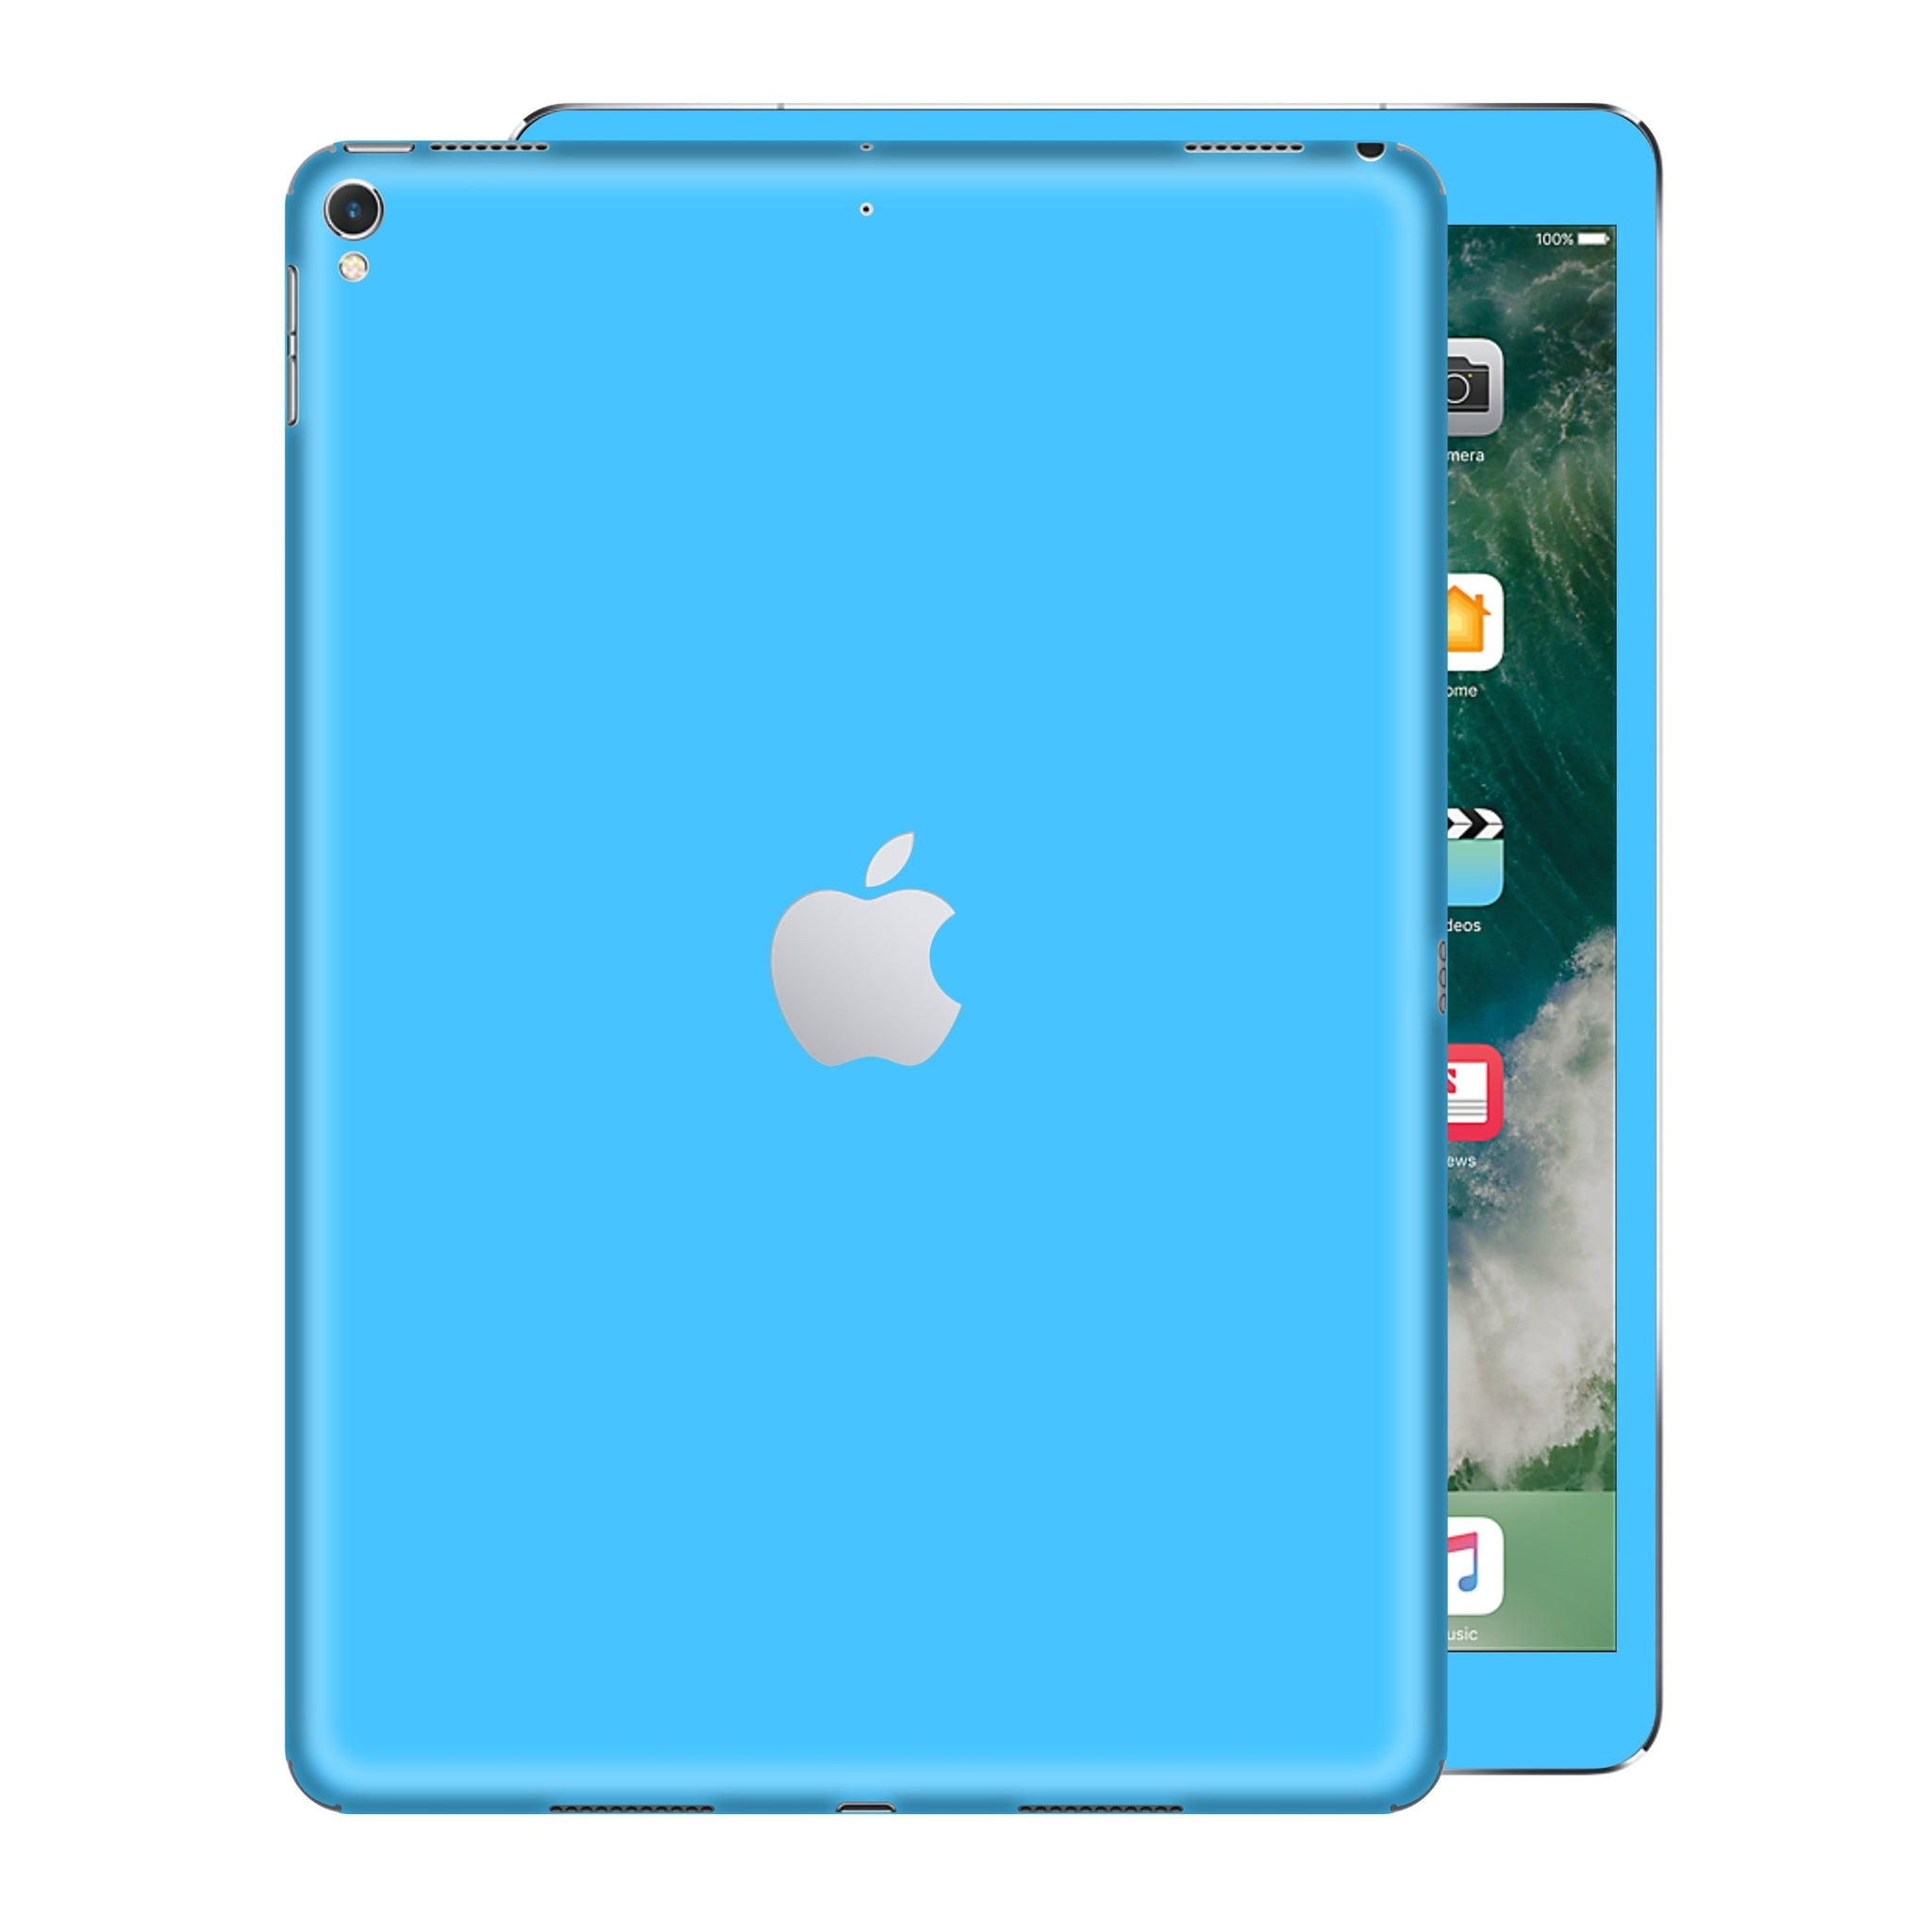 iPad PRO 12.9 inch 2017 Matt Matte Blue Skin Wrap Sticker Decal Cover Protector by EasySkinz